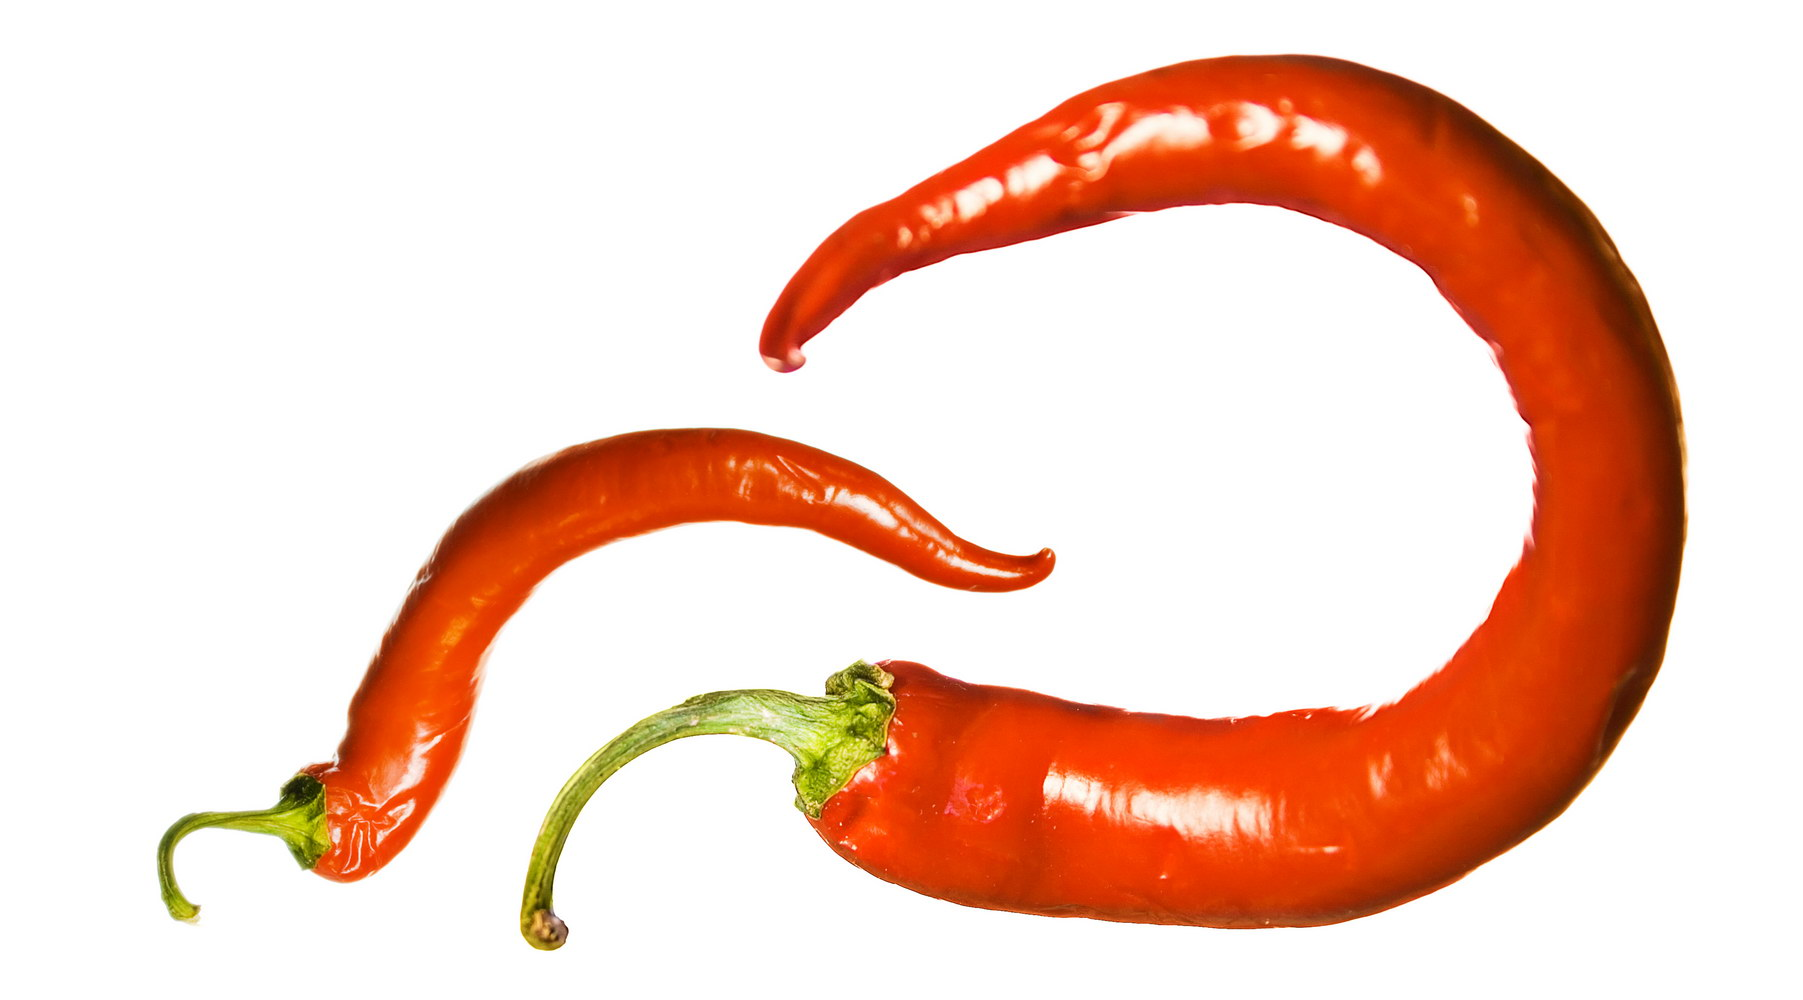 Red chilli pepper photo